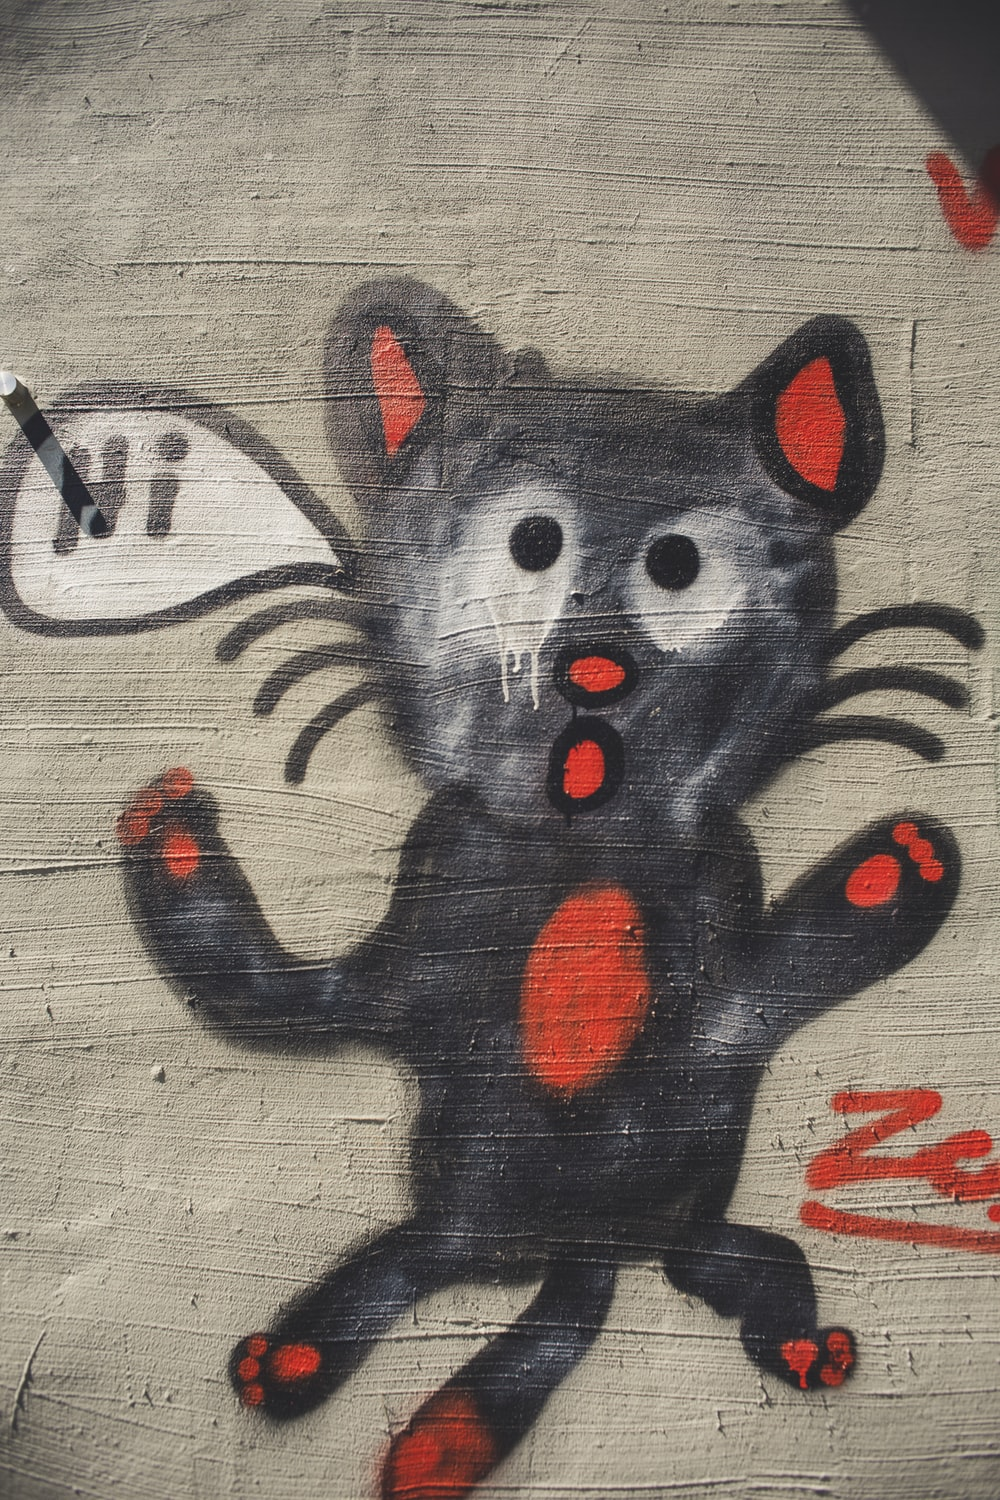 black and red cat illustration